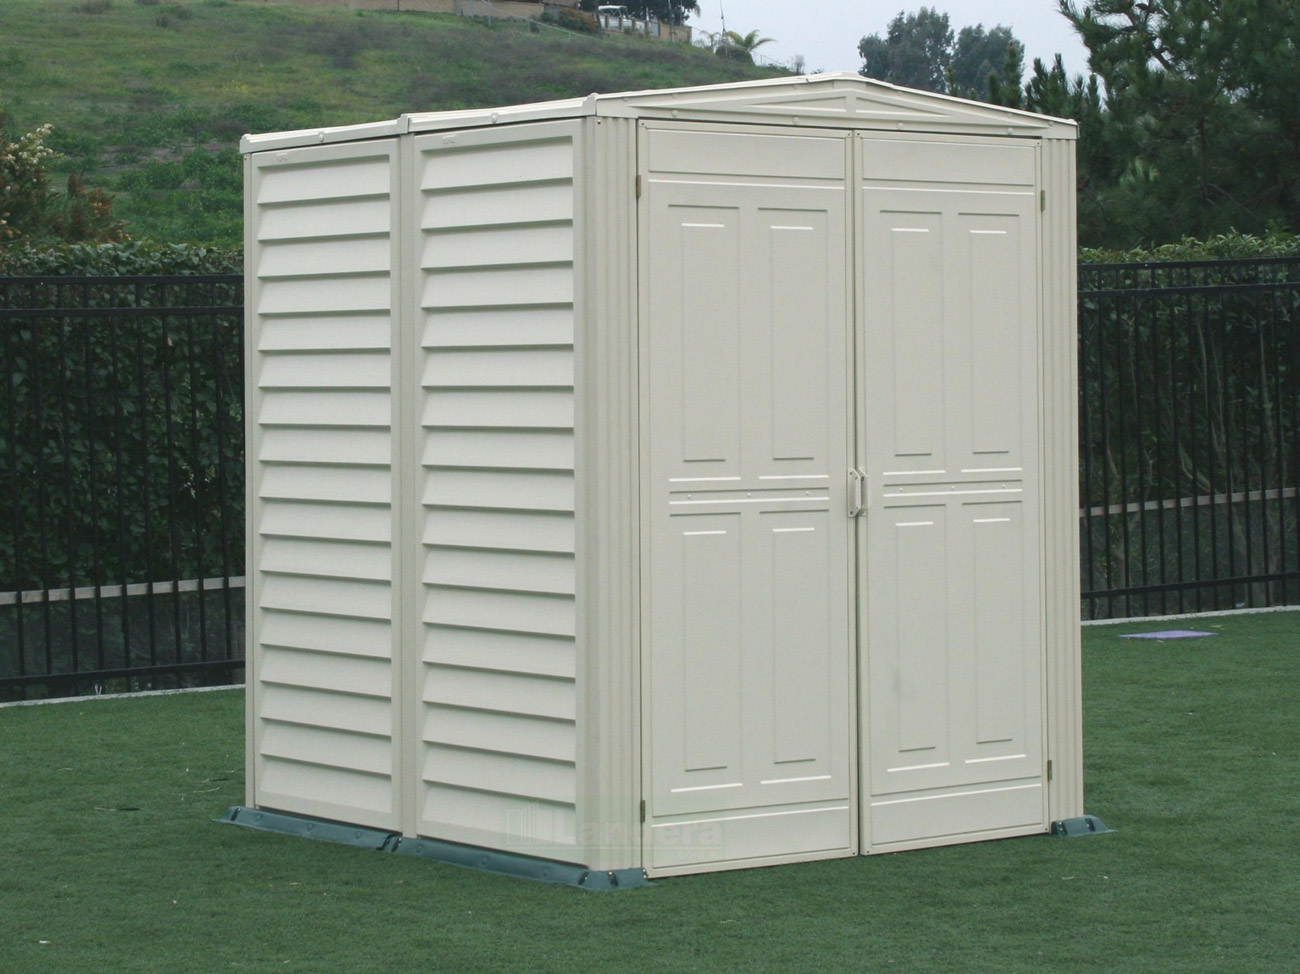 Duramax 5 39 x5 39 garden shed 1 6mx1 6m landera for Outside storage shed